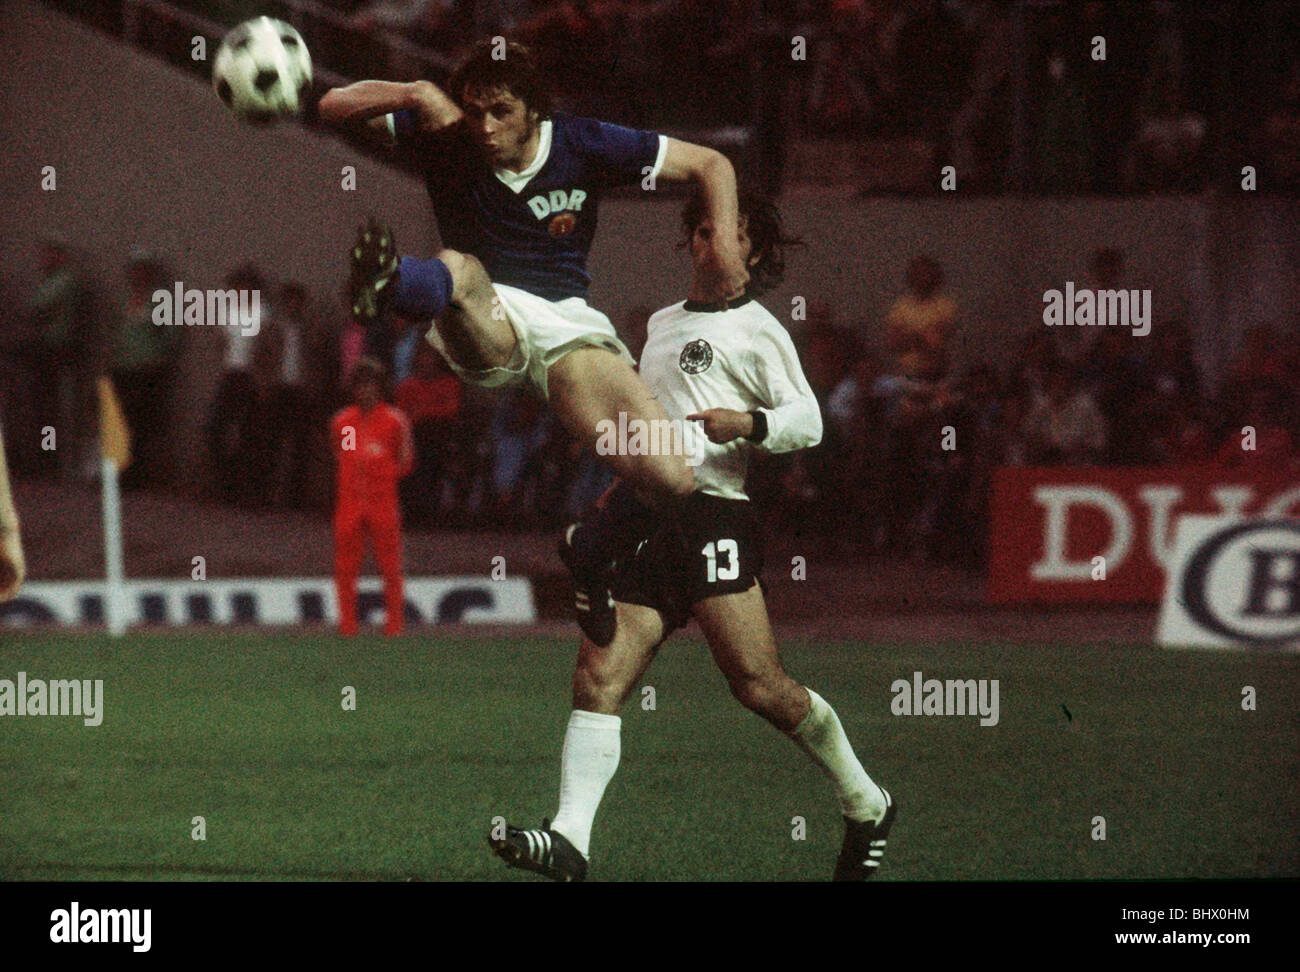 East Germany v West Germany World Cup 1974 football - Stock Image